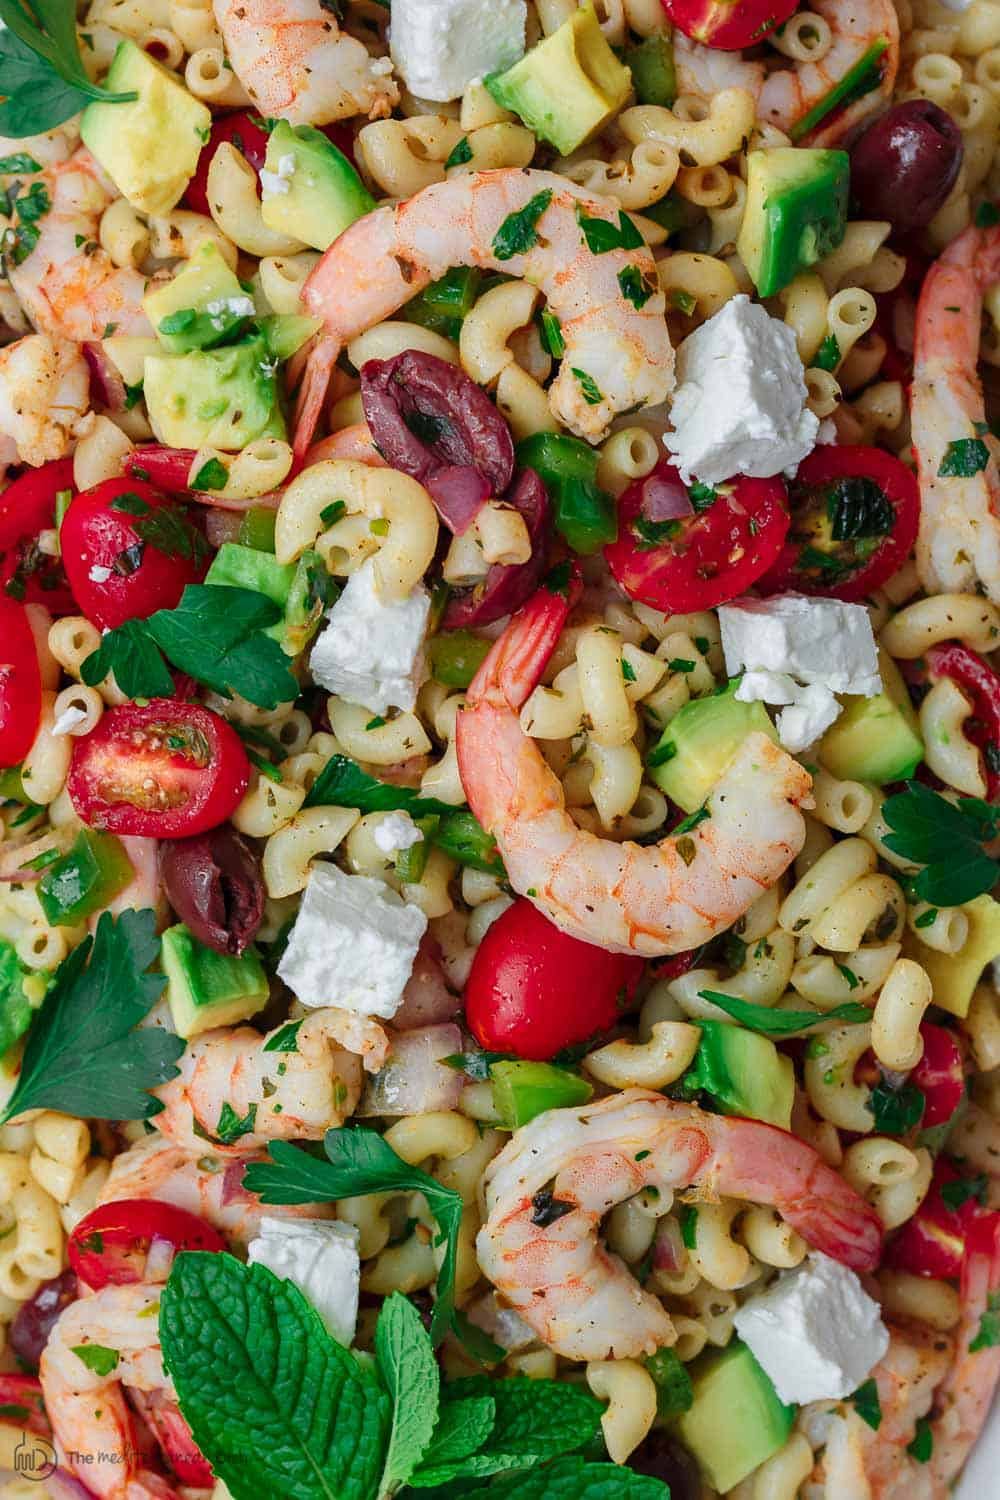 Close-up of shrimp and feta cheese in Mediterranean pasta salad